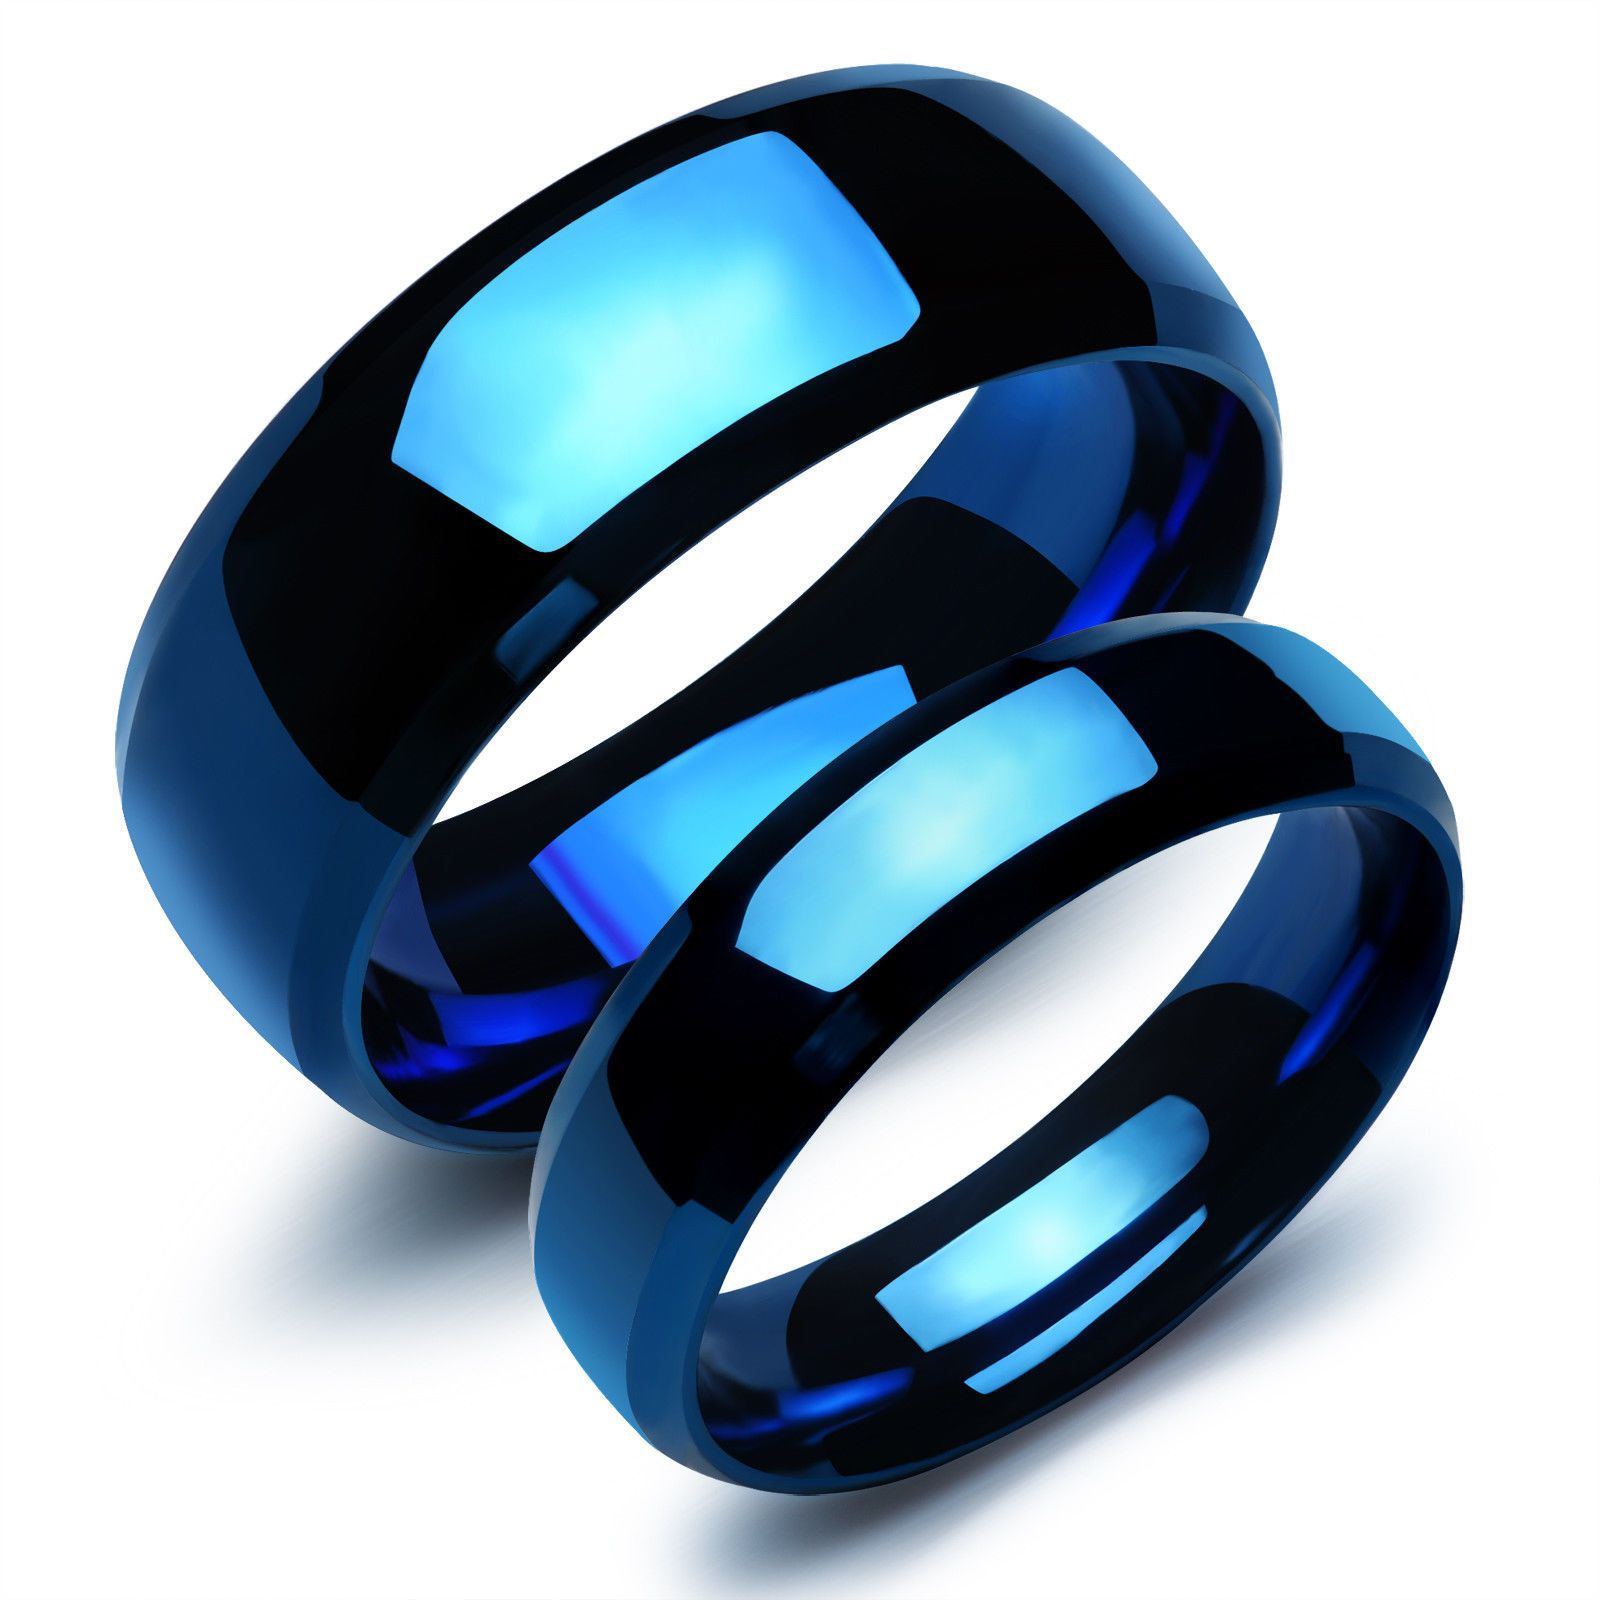 Details about Stainless Steel Couples Blue Engagement Ring Wedding Band Men Women Jewelry Gift